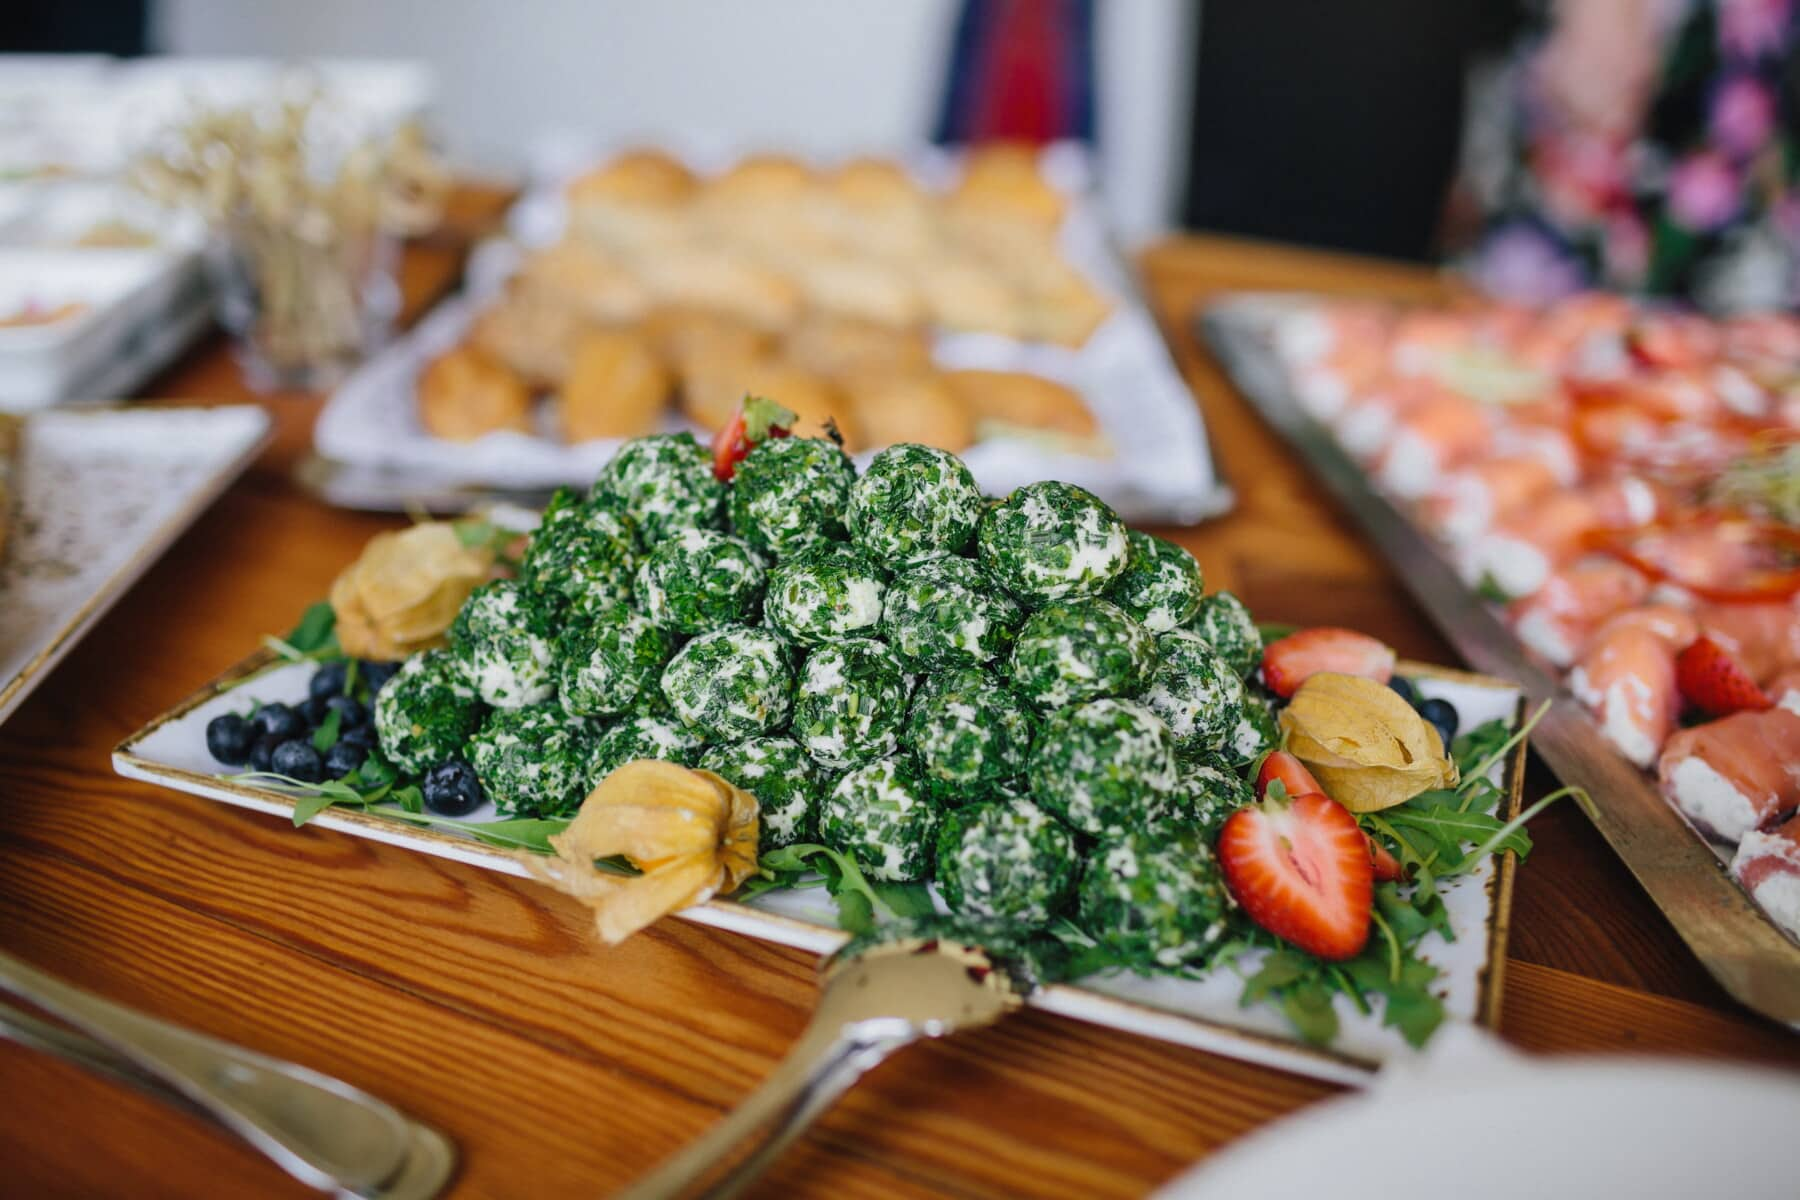 organic, spinach, buffet, appetizer, cheese, salad bar, vegetables, dish, dinner, meal